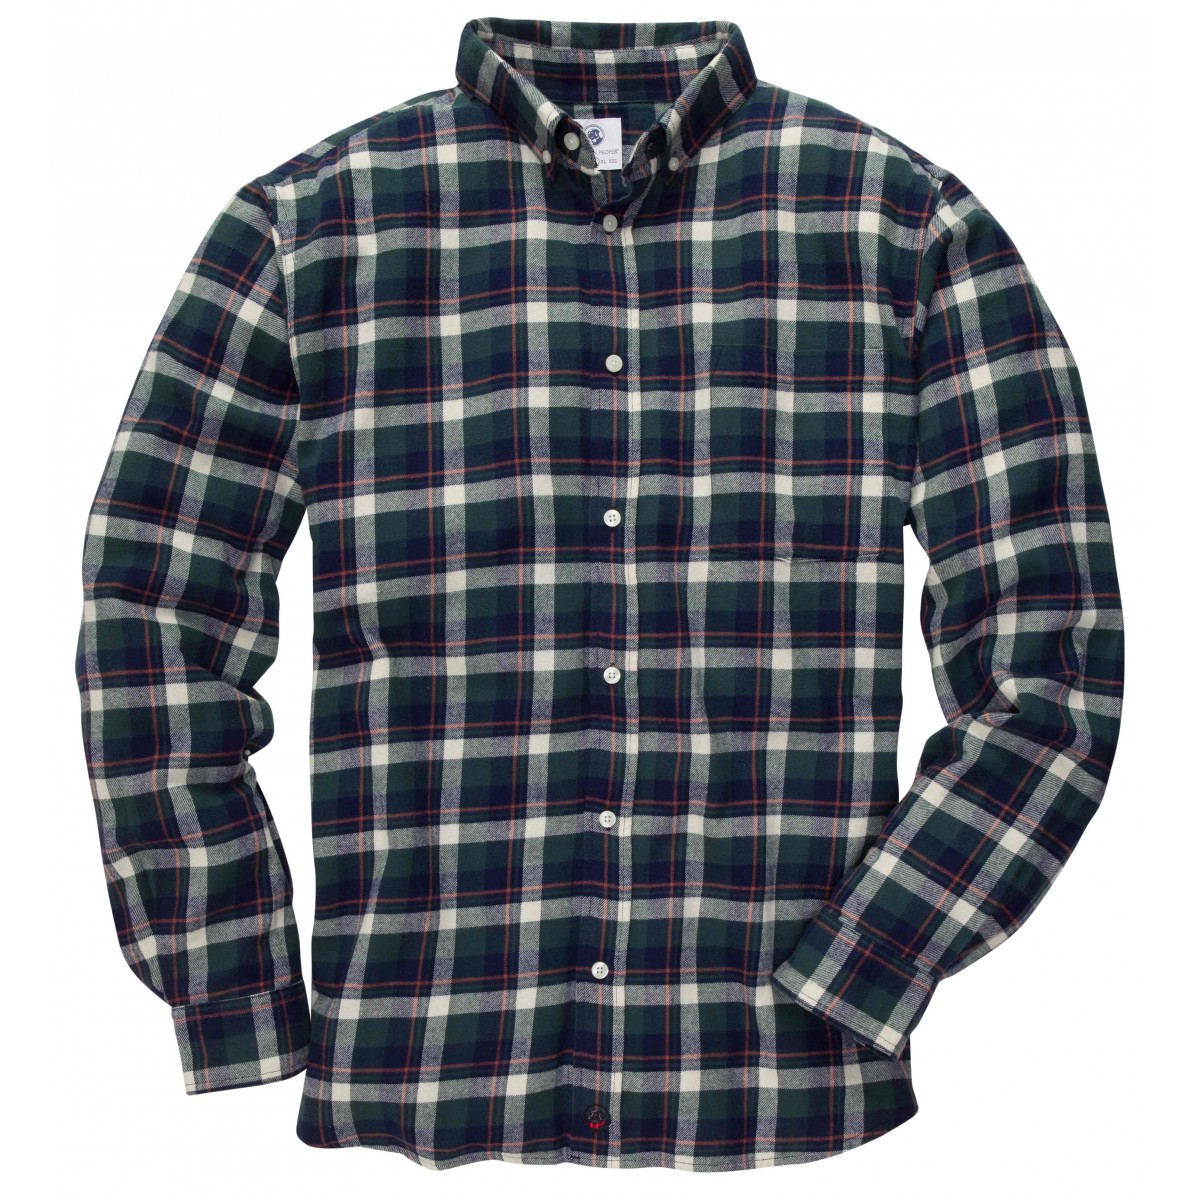 Gregory Southern Shirt